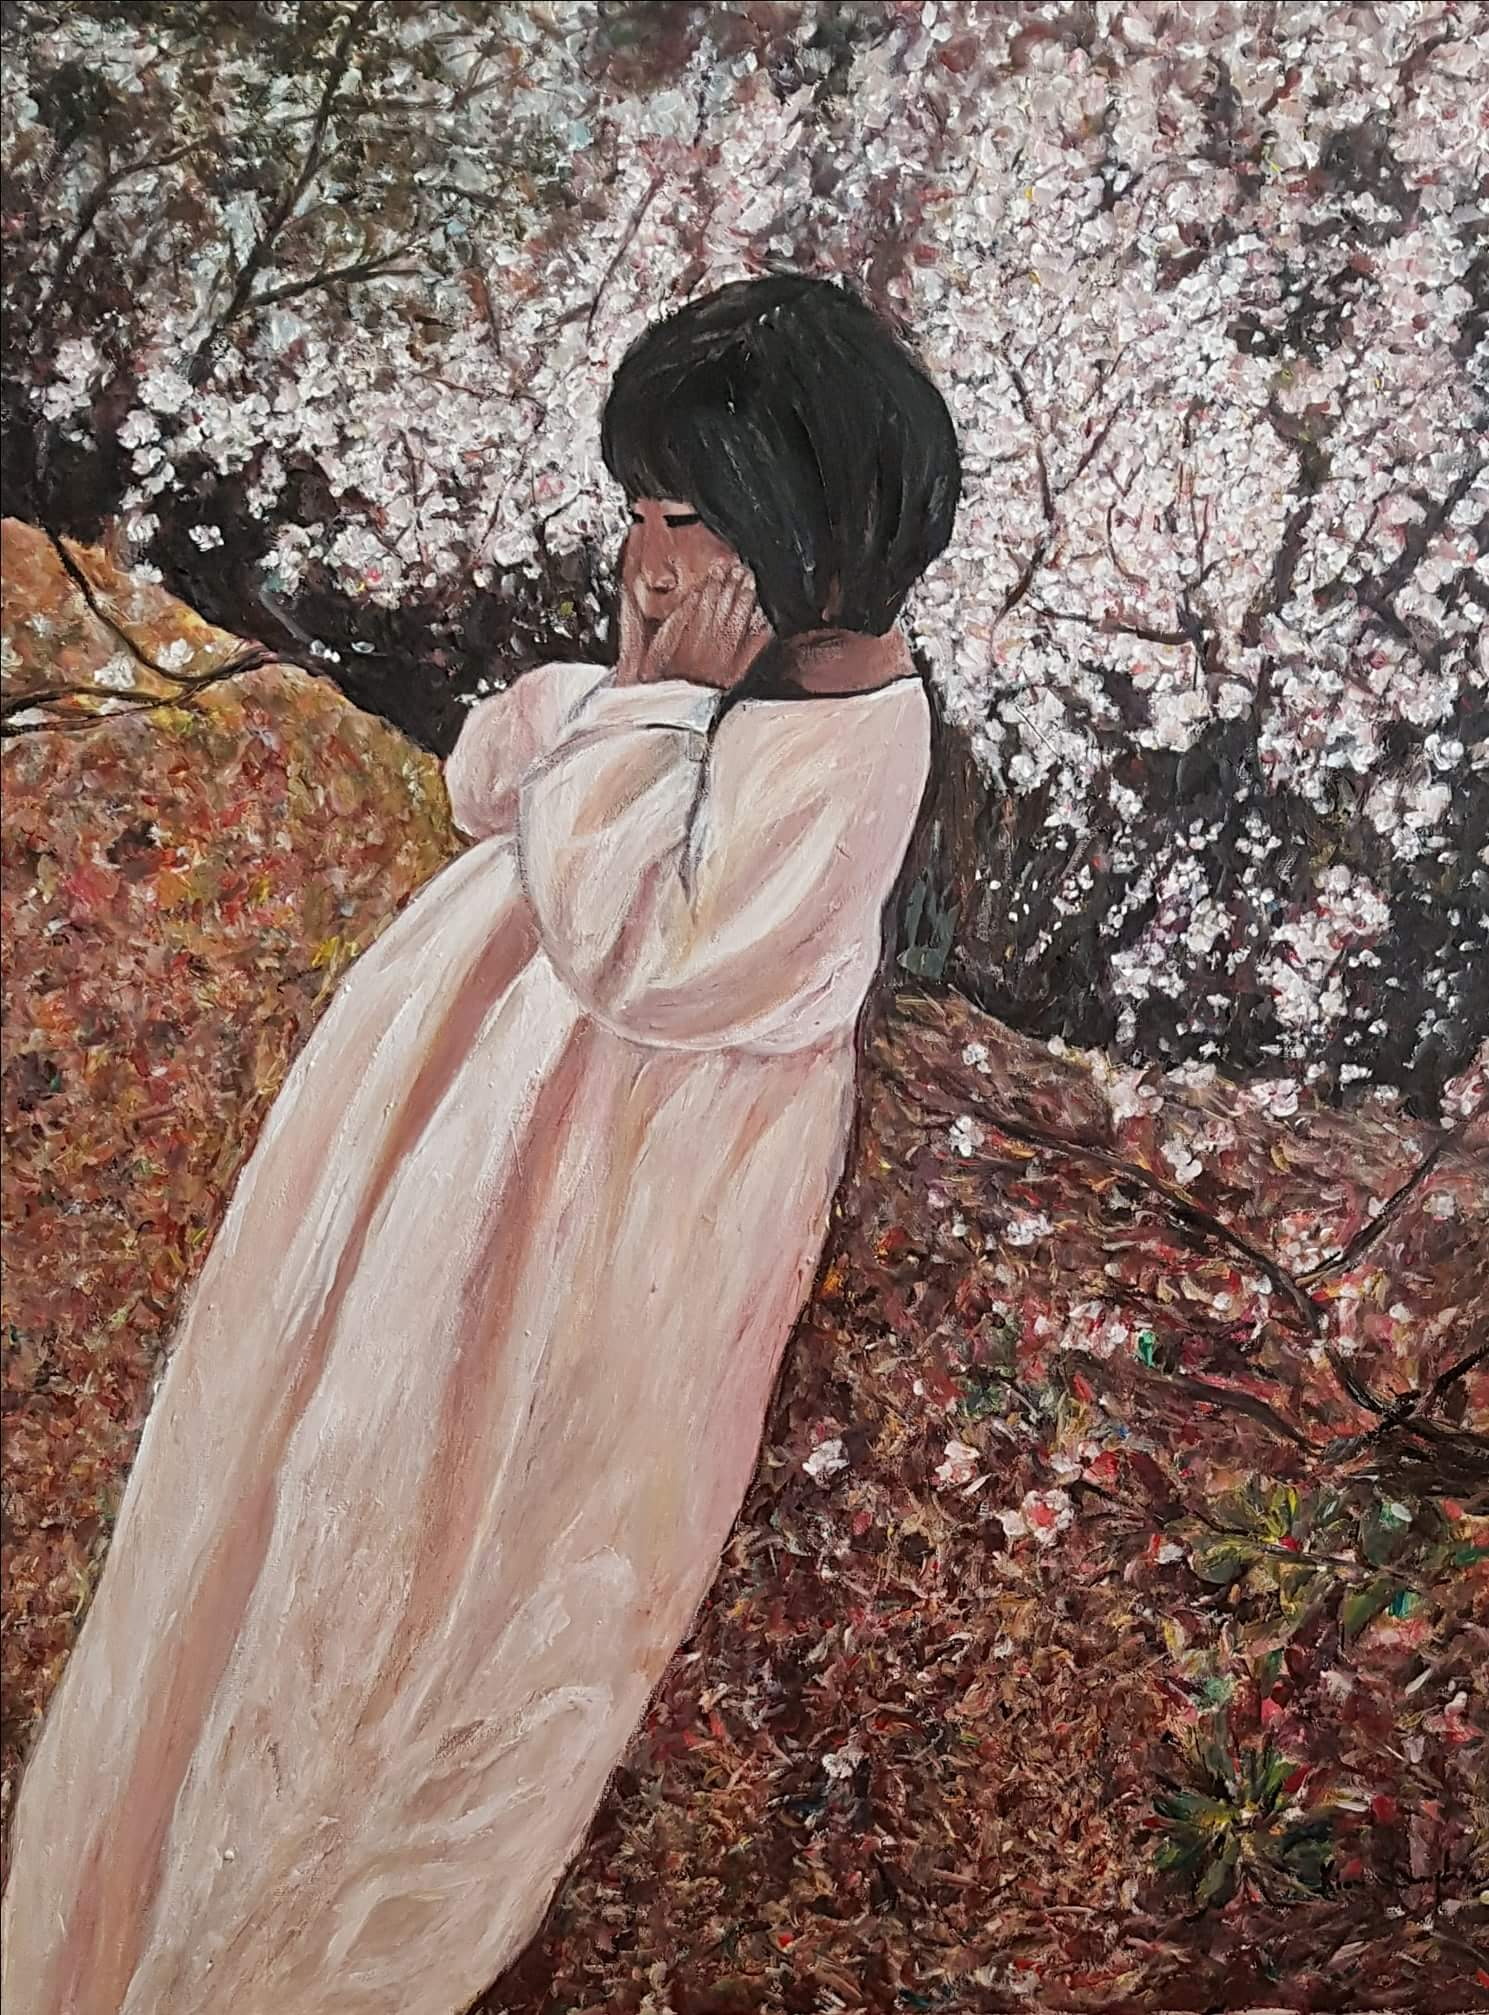 La petite fille au printemps The little girl in Spring 60x70 2018